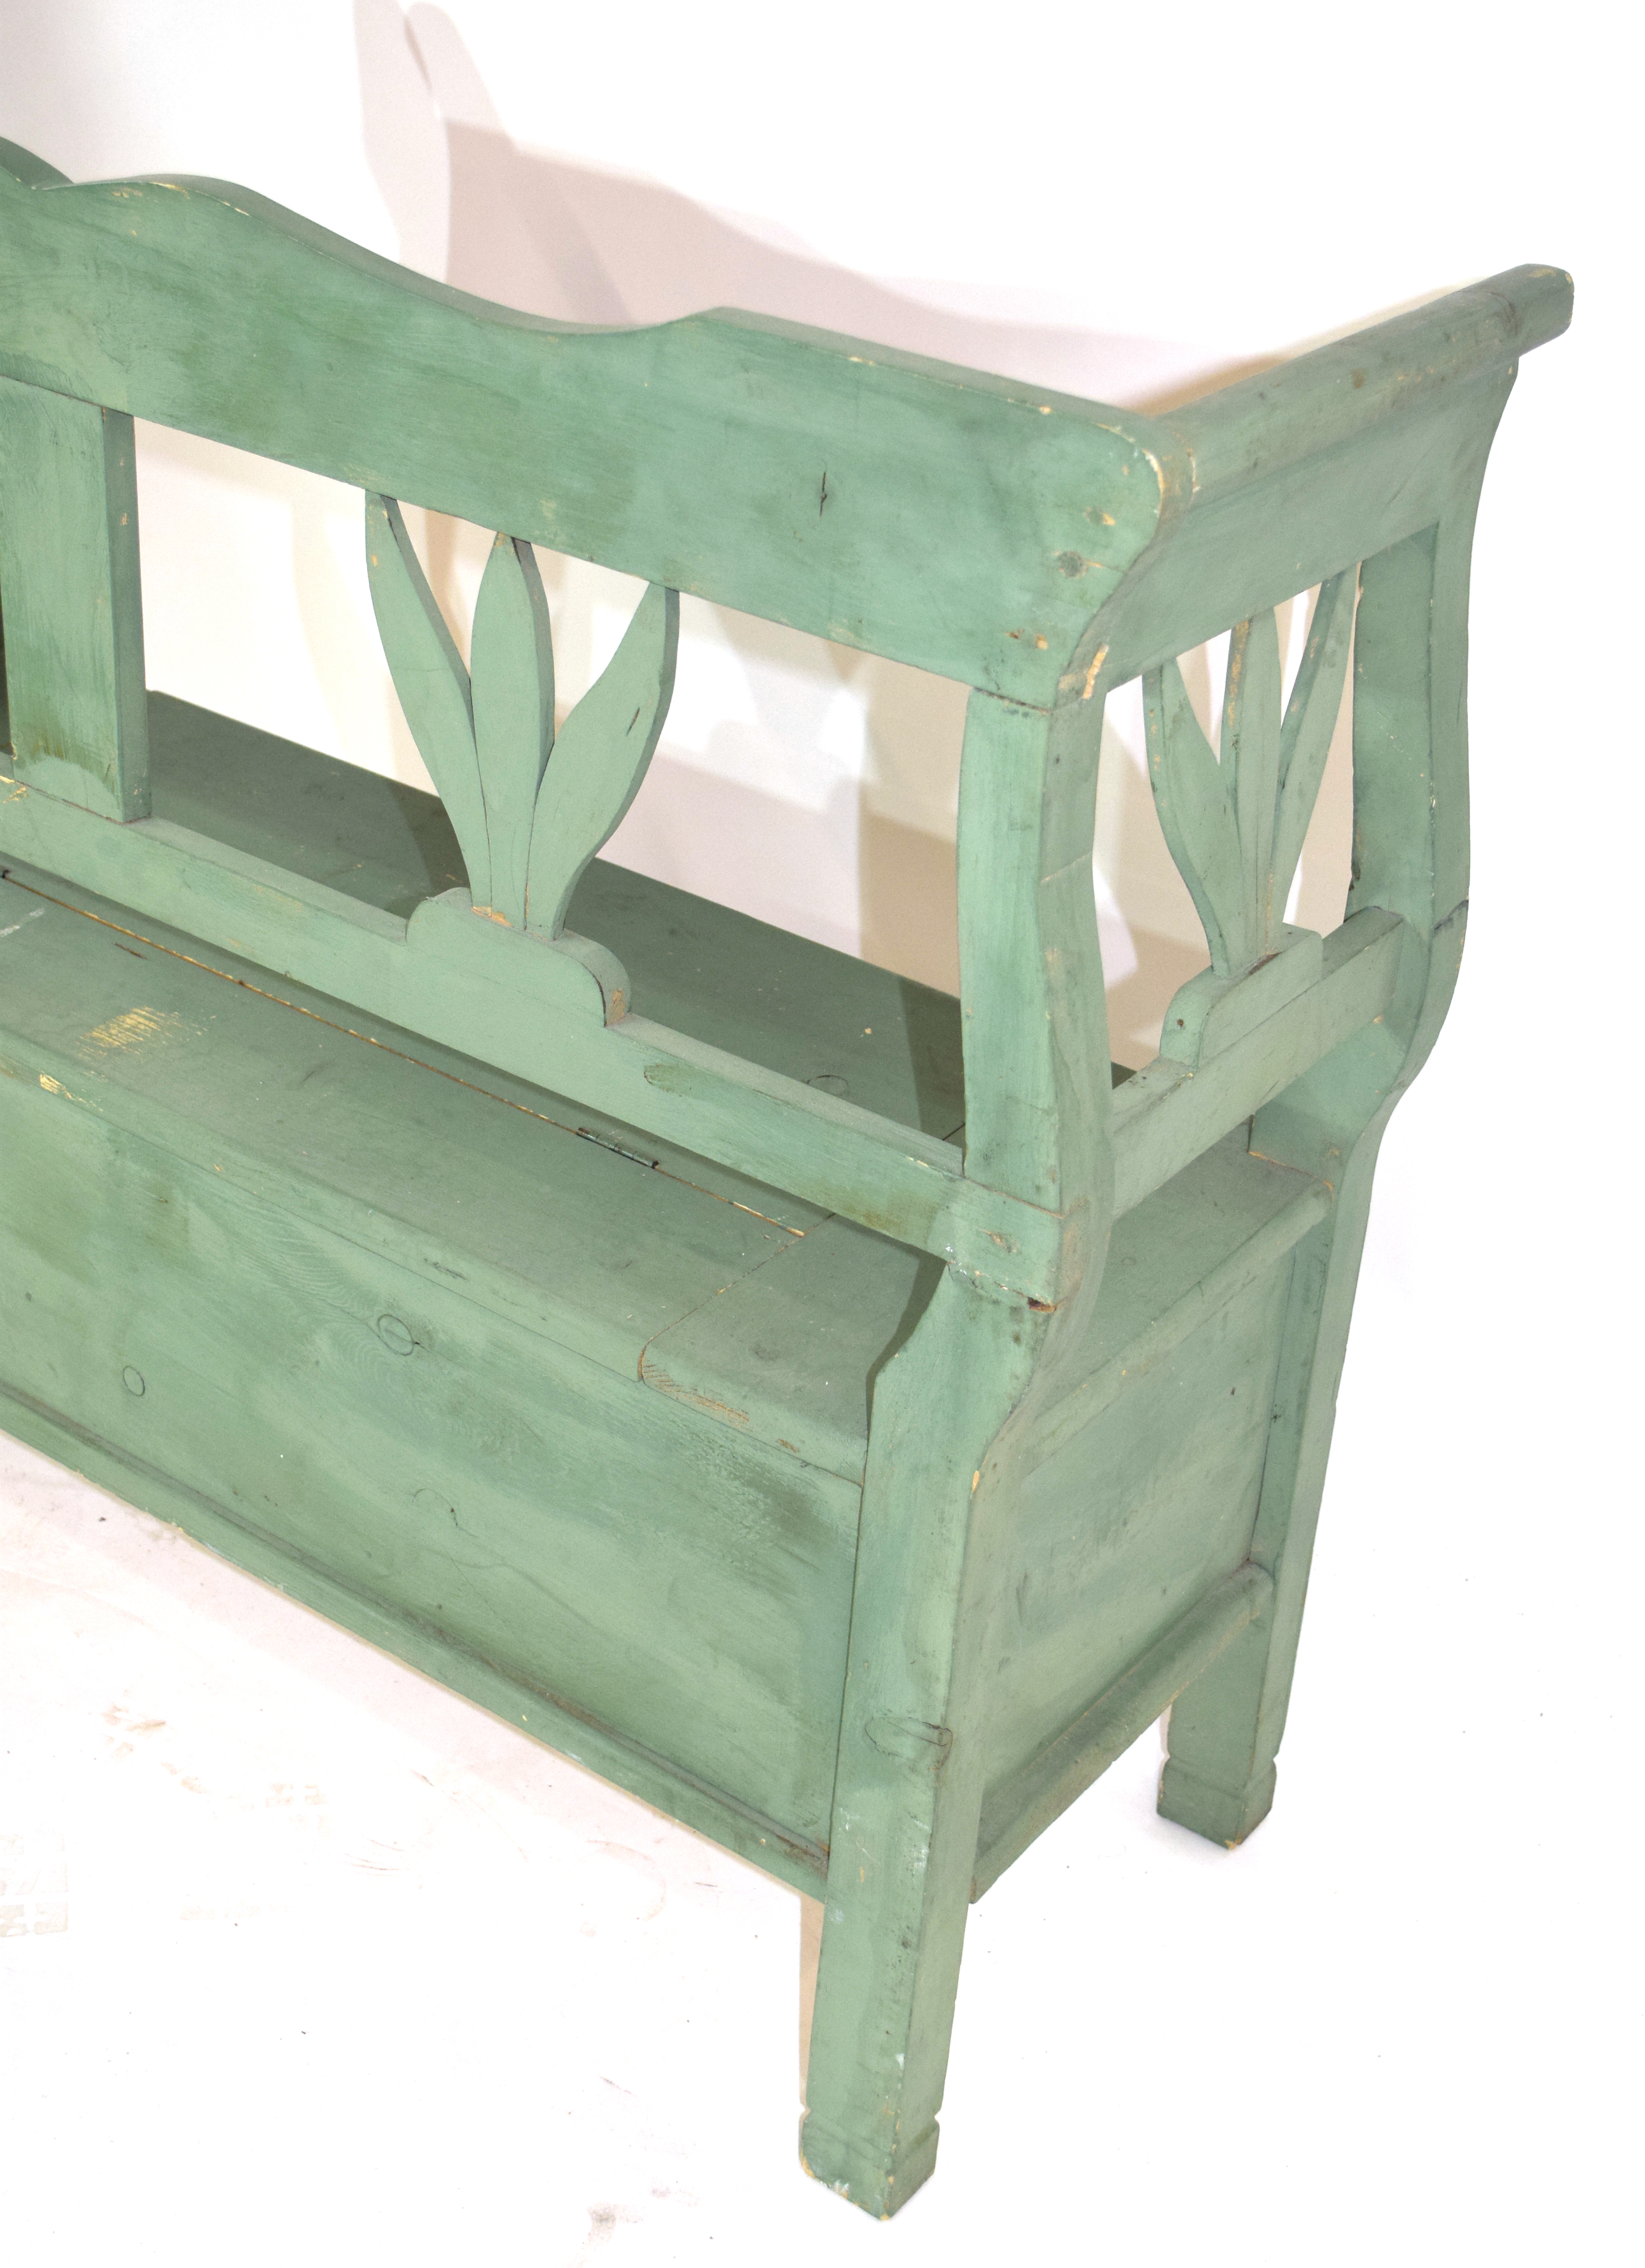 Painted pine settle with storage seat 119cm wide Condition: Paint work in worn condition^ appears - Image 4 of 4